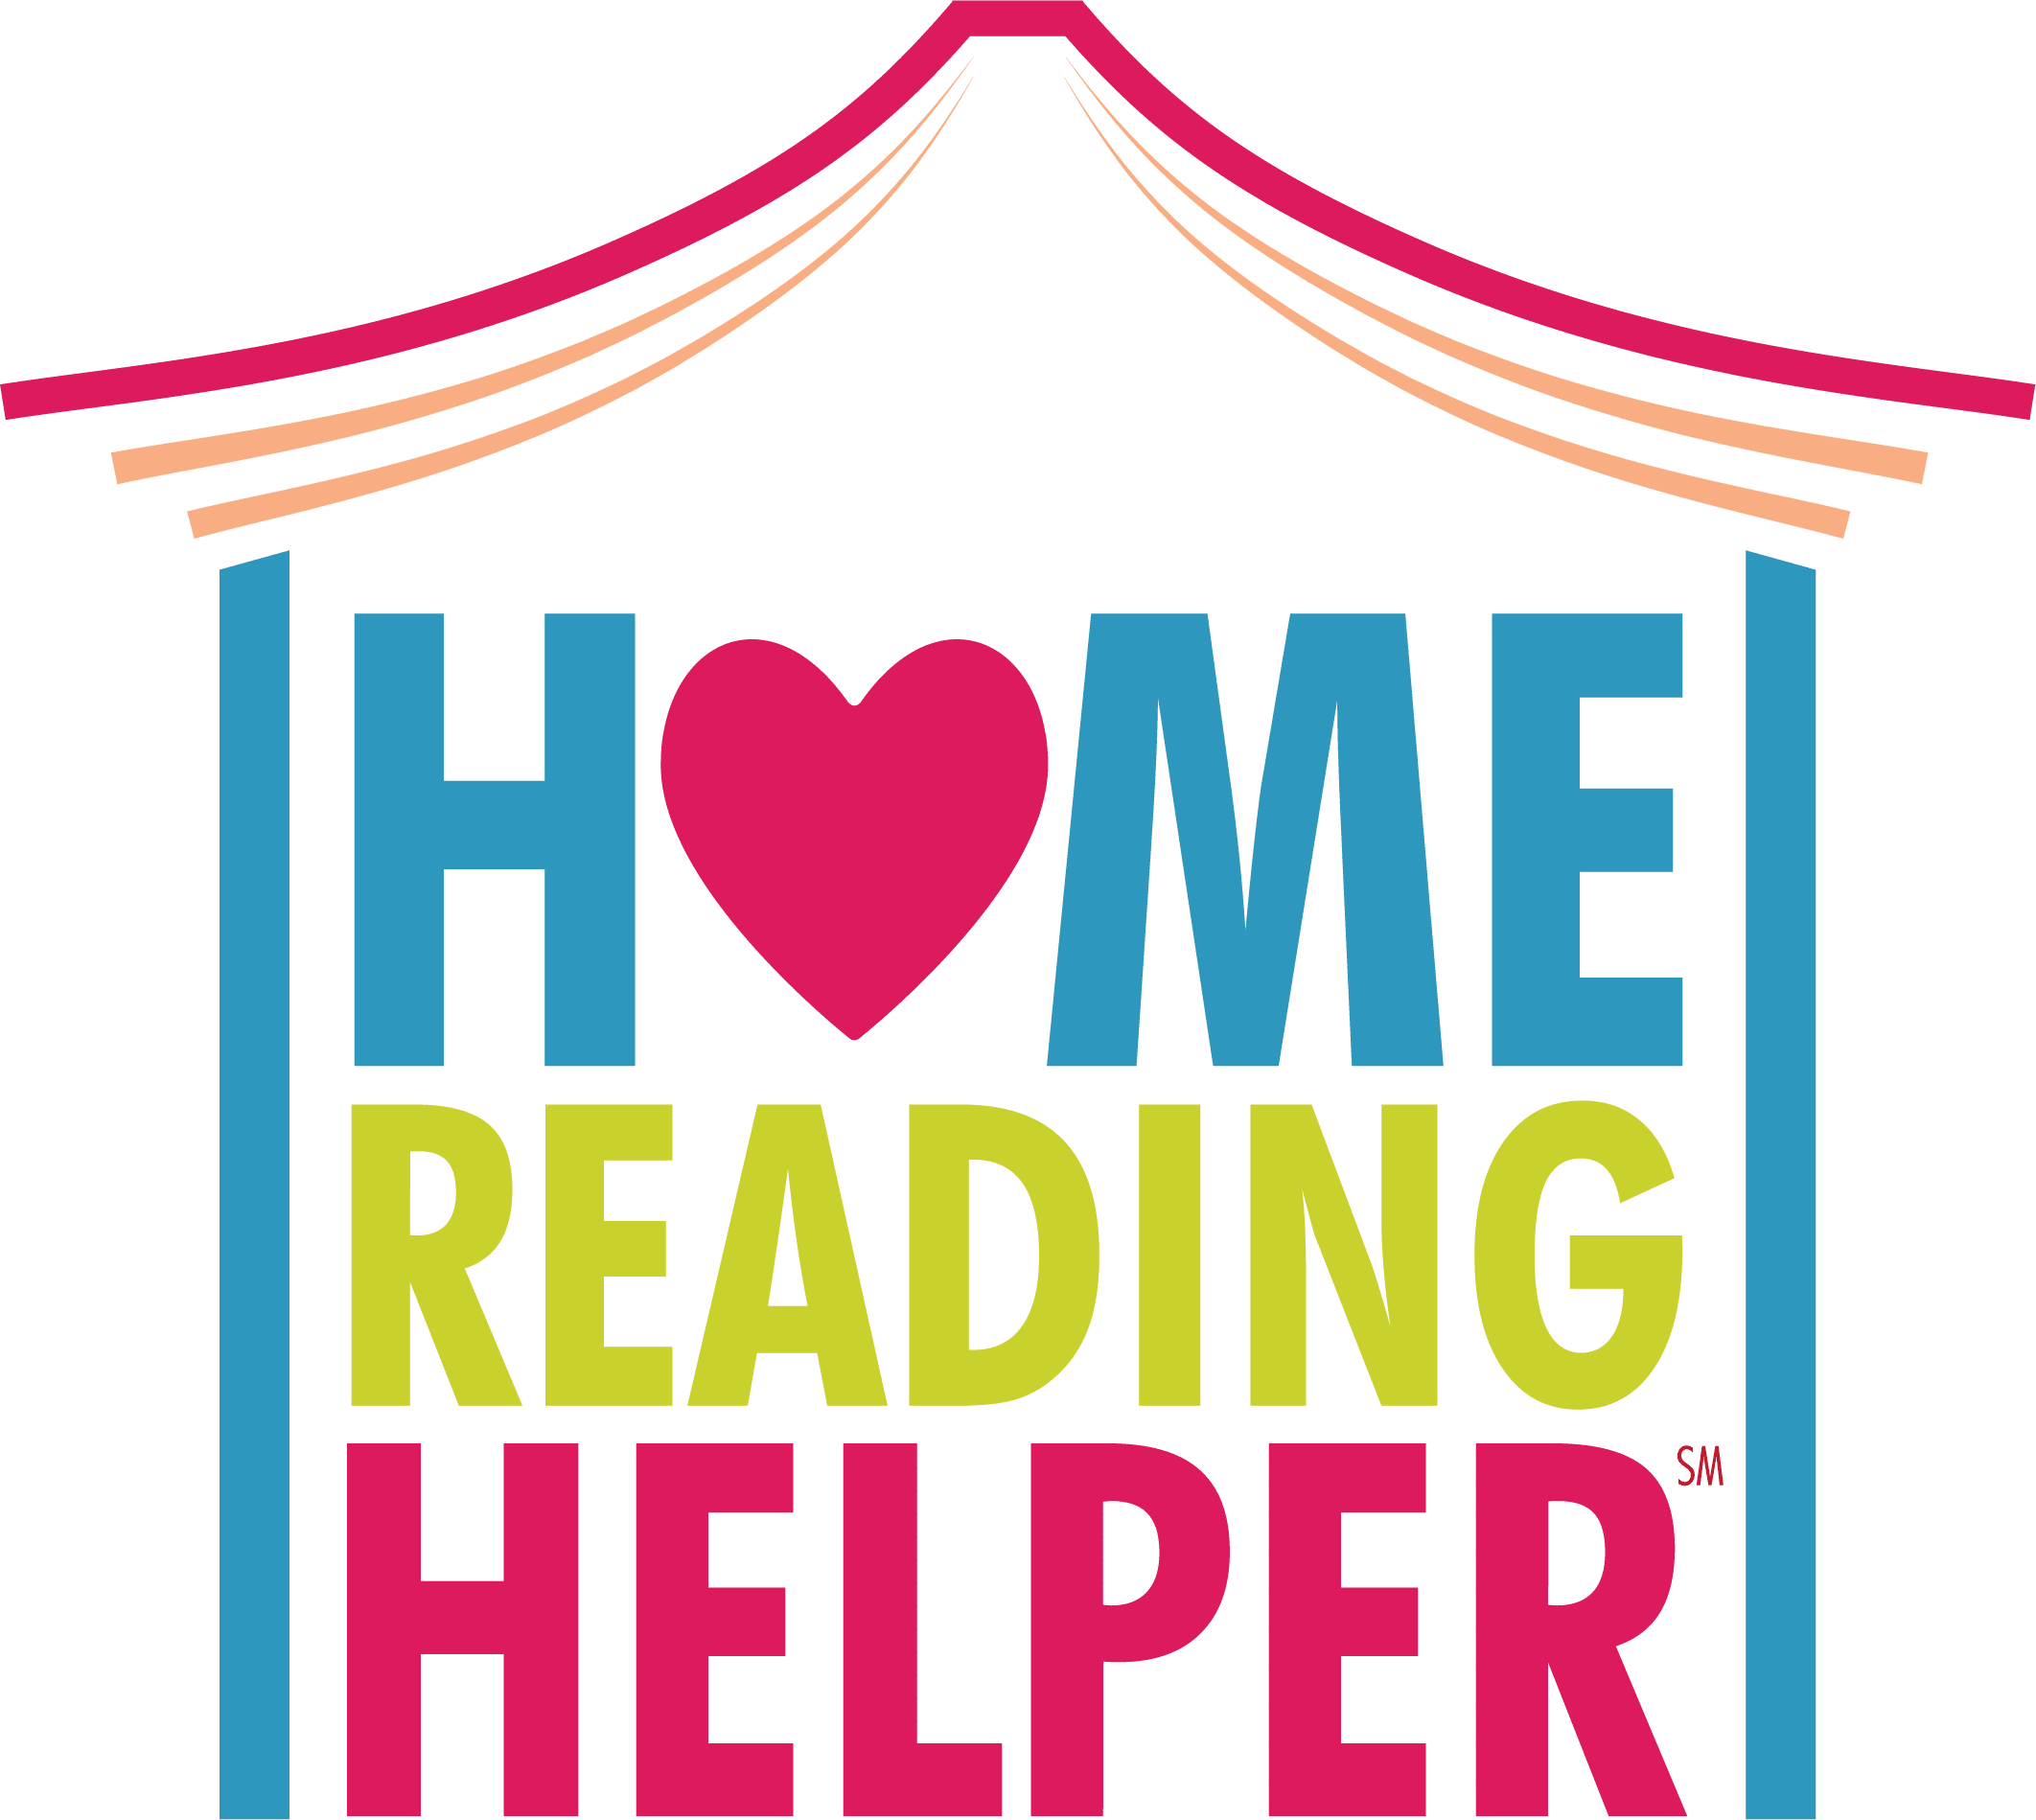 Children's Reading Resource | Pre-K - 3rd Grade | Home Reading Helper